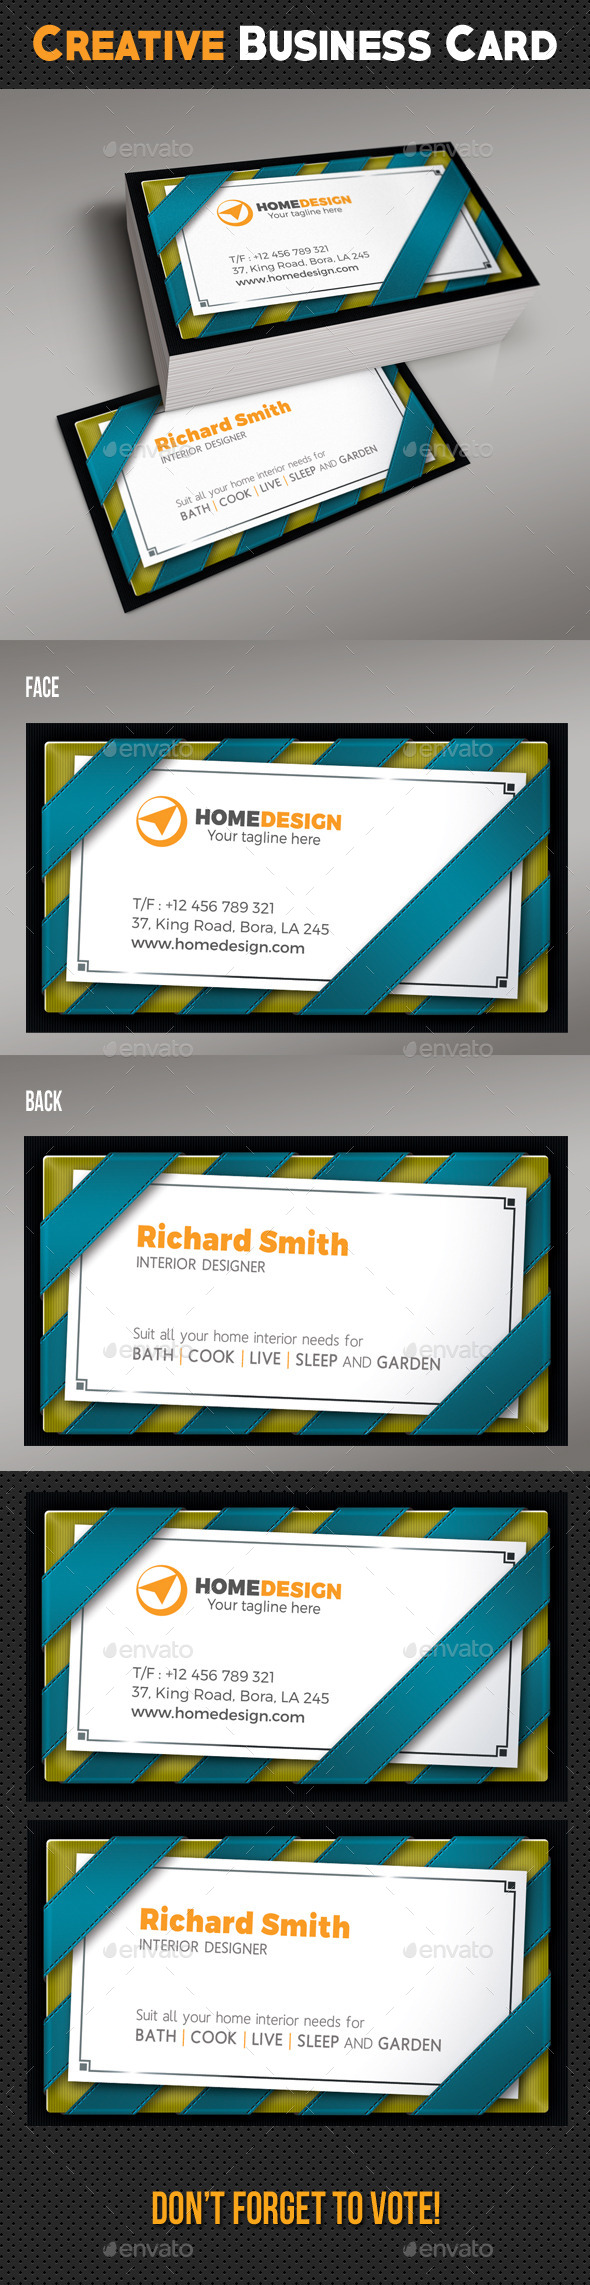 Creative Business Card 05 - Creative Business Cards